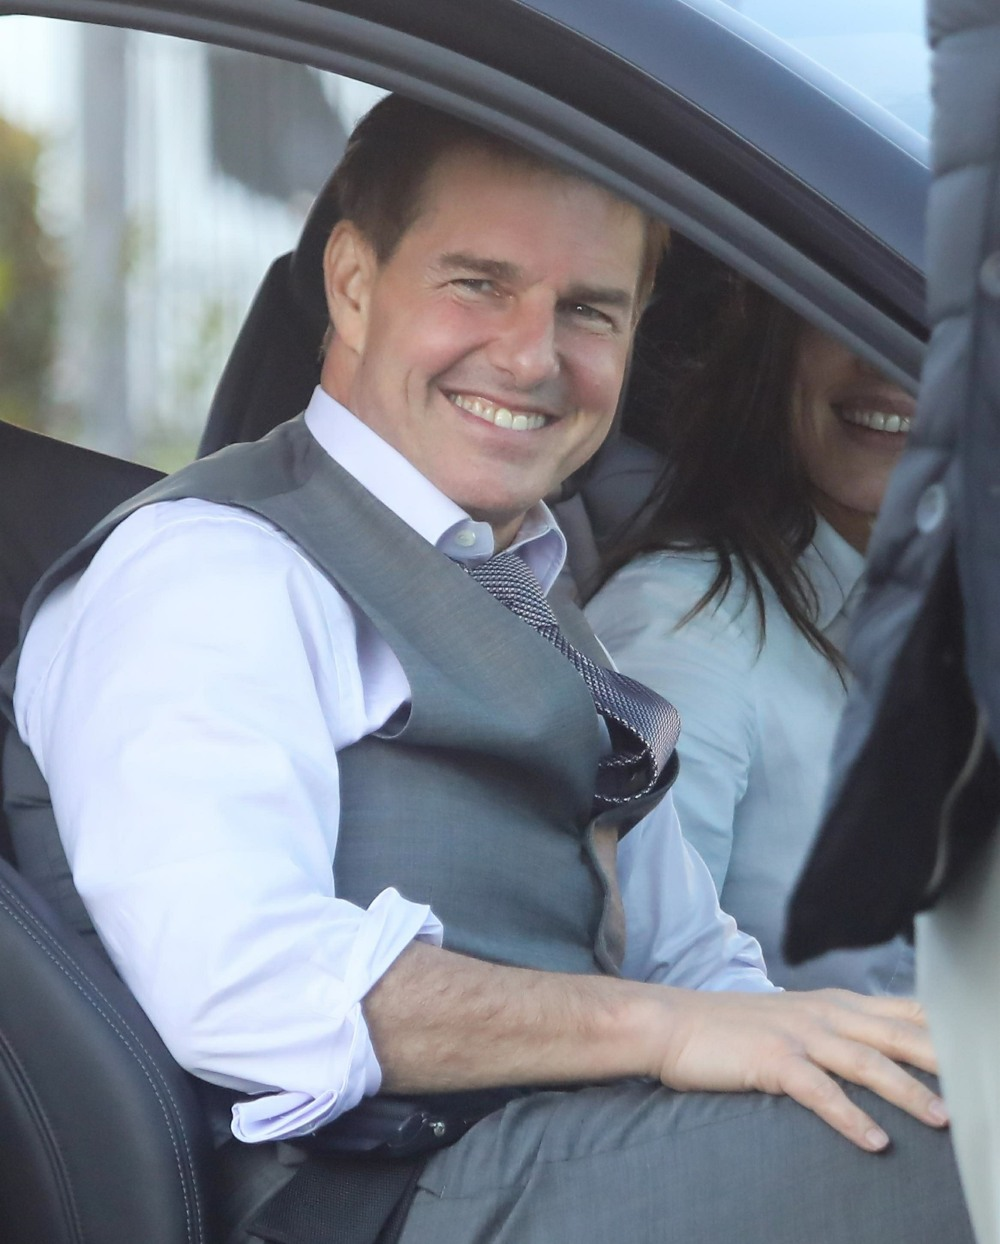 Tom Cruise is a happy guy on set!